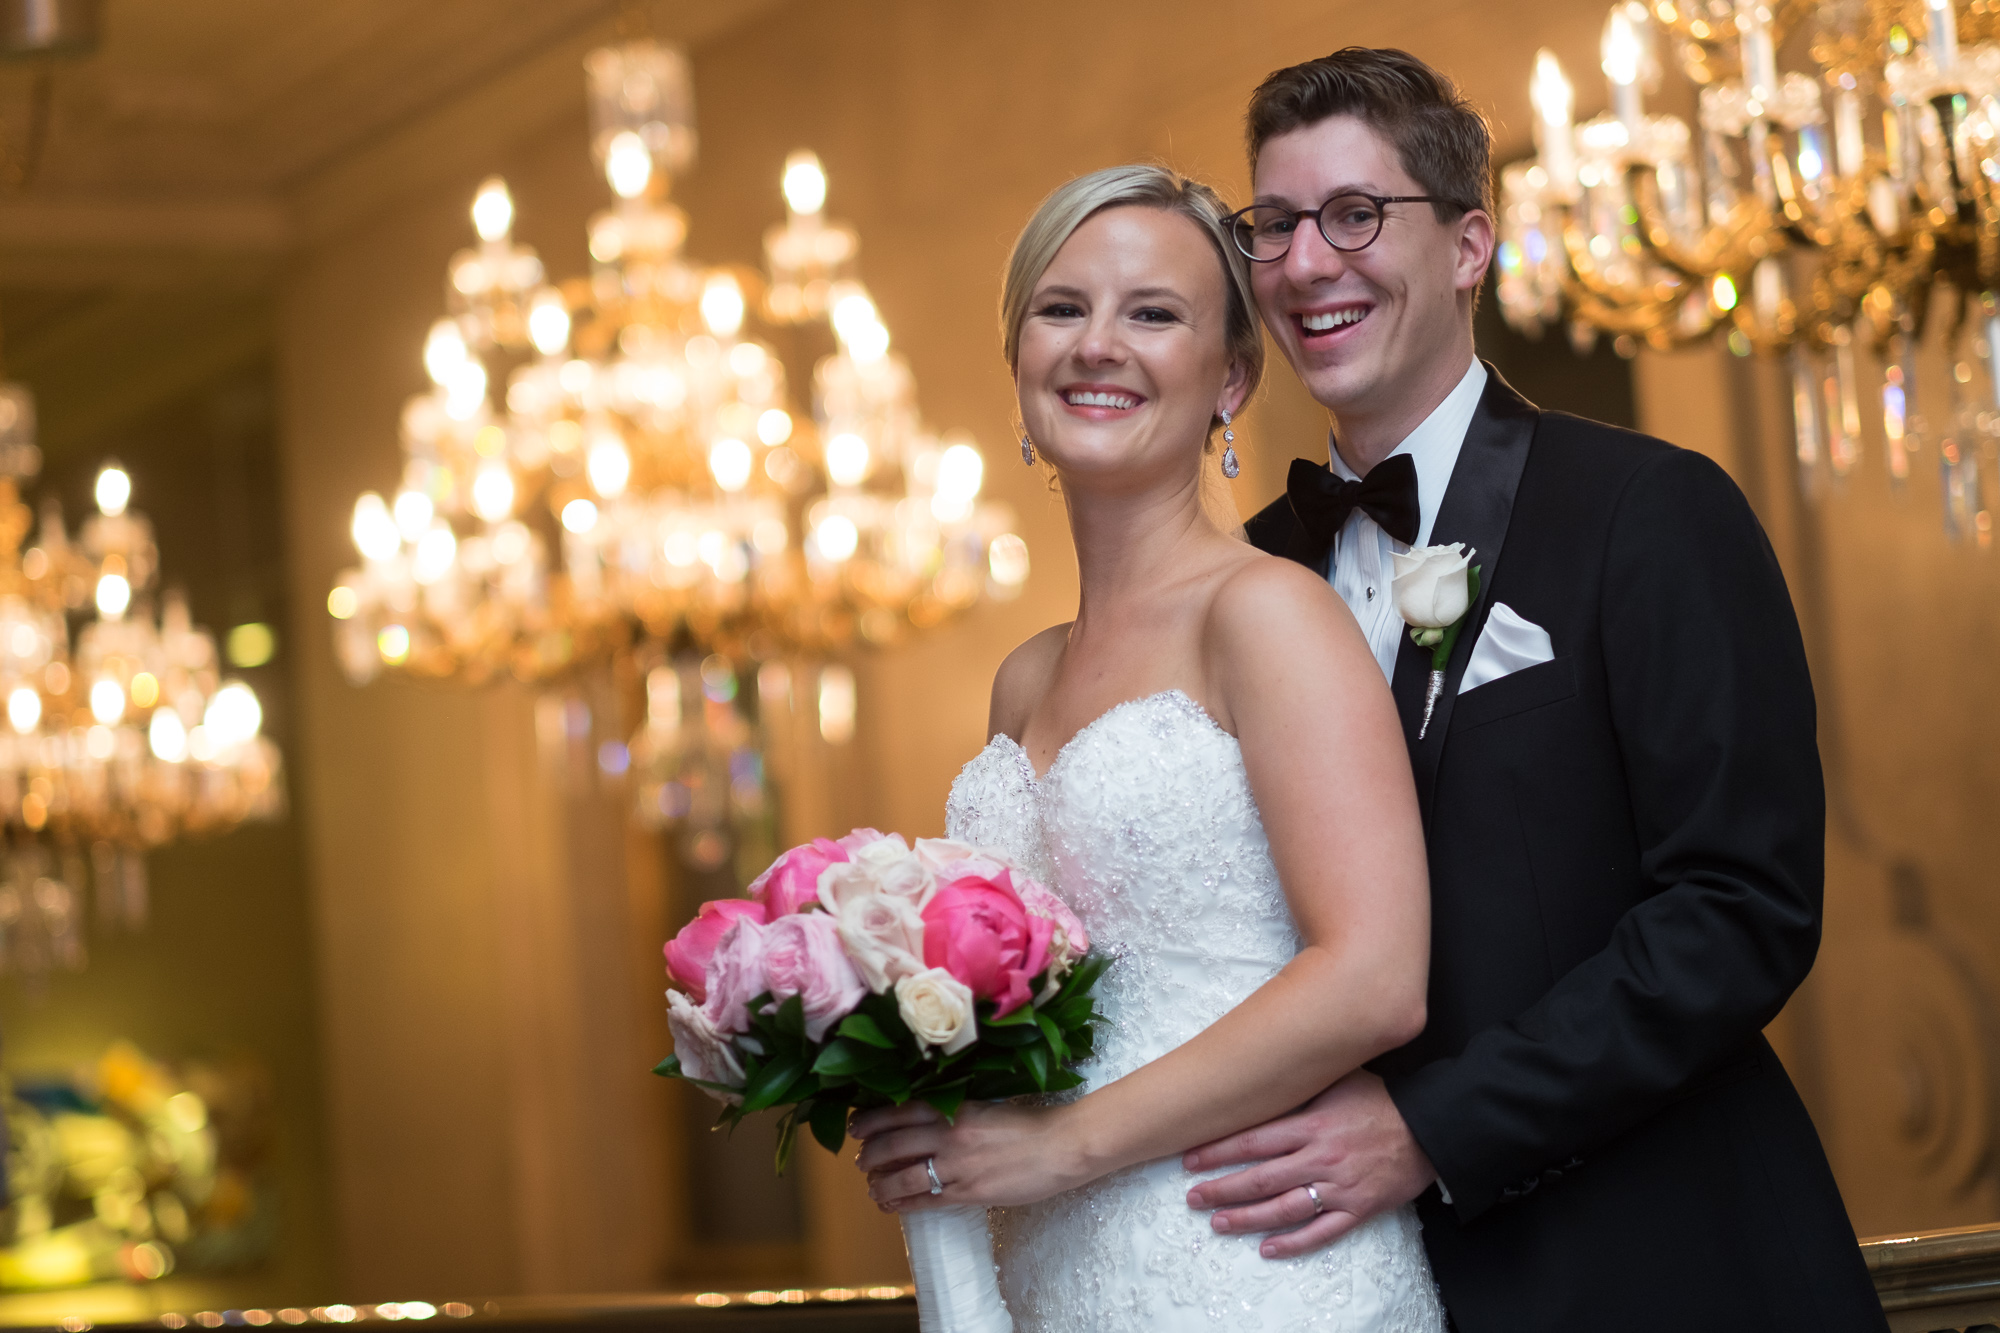 Danielle and Eric pose for a portrait before entering their wedding reception at the One King West Hotel in Toronto.